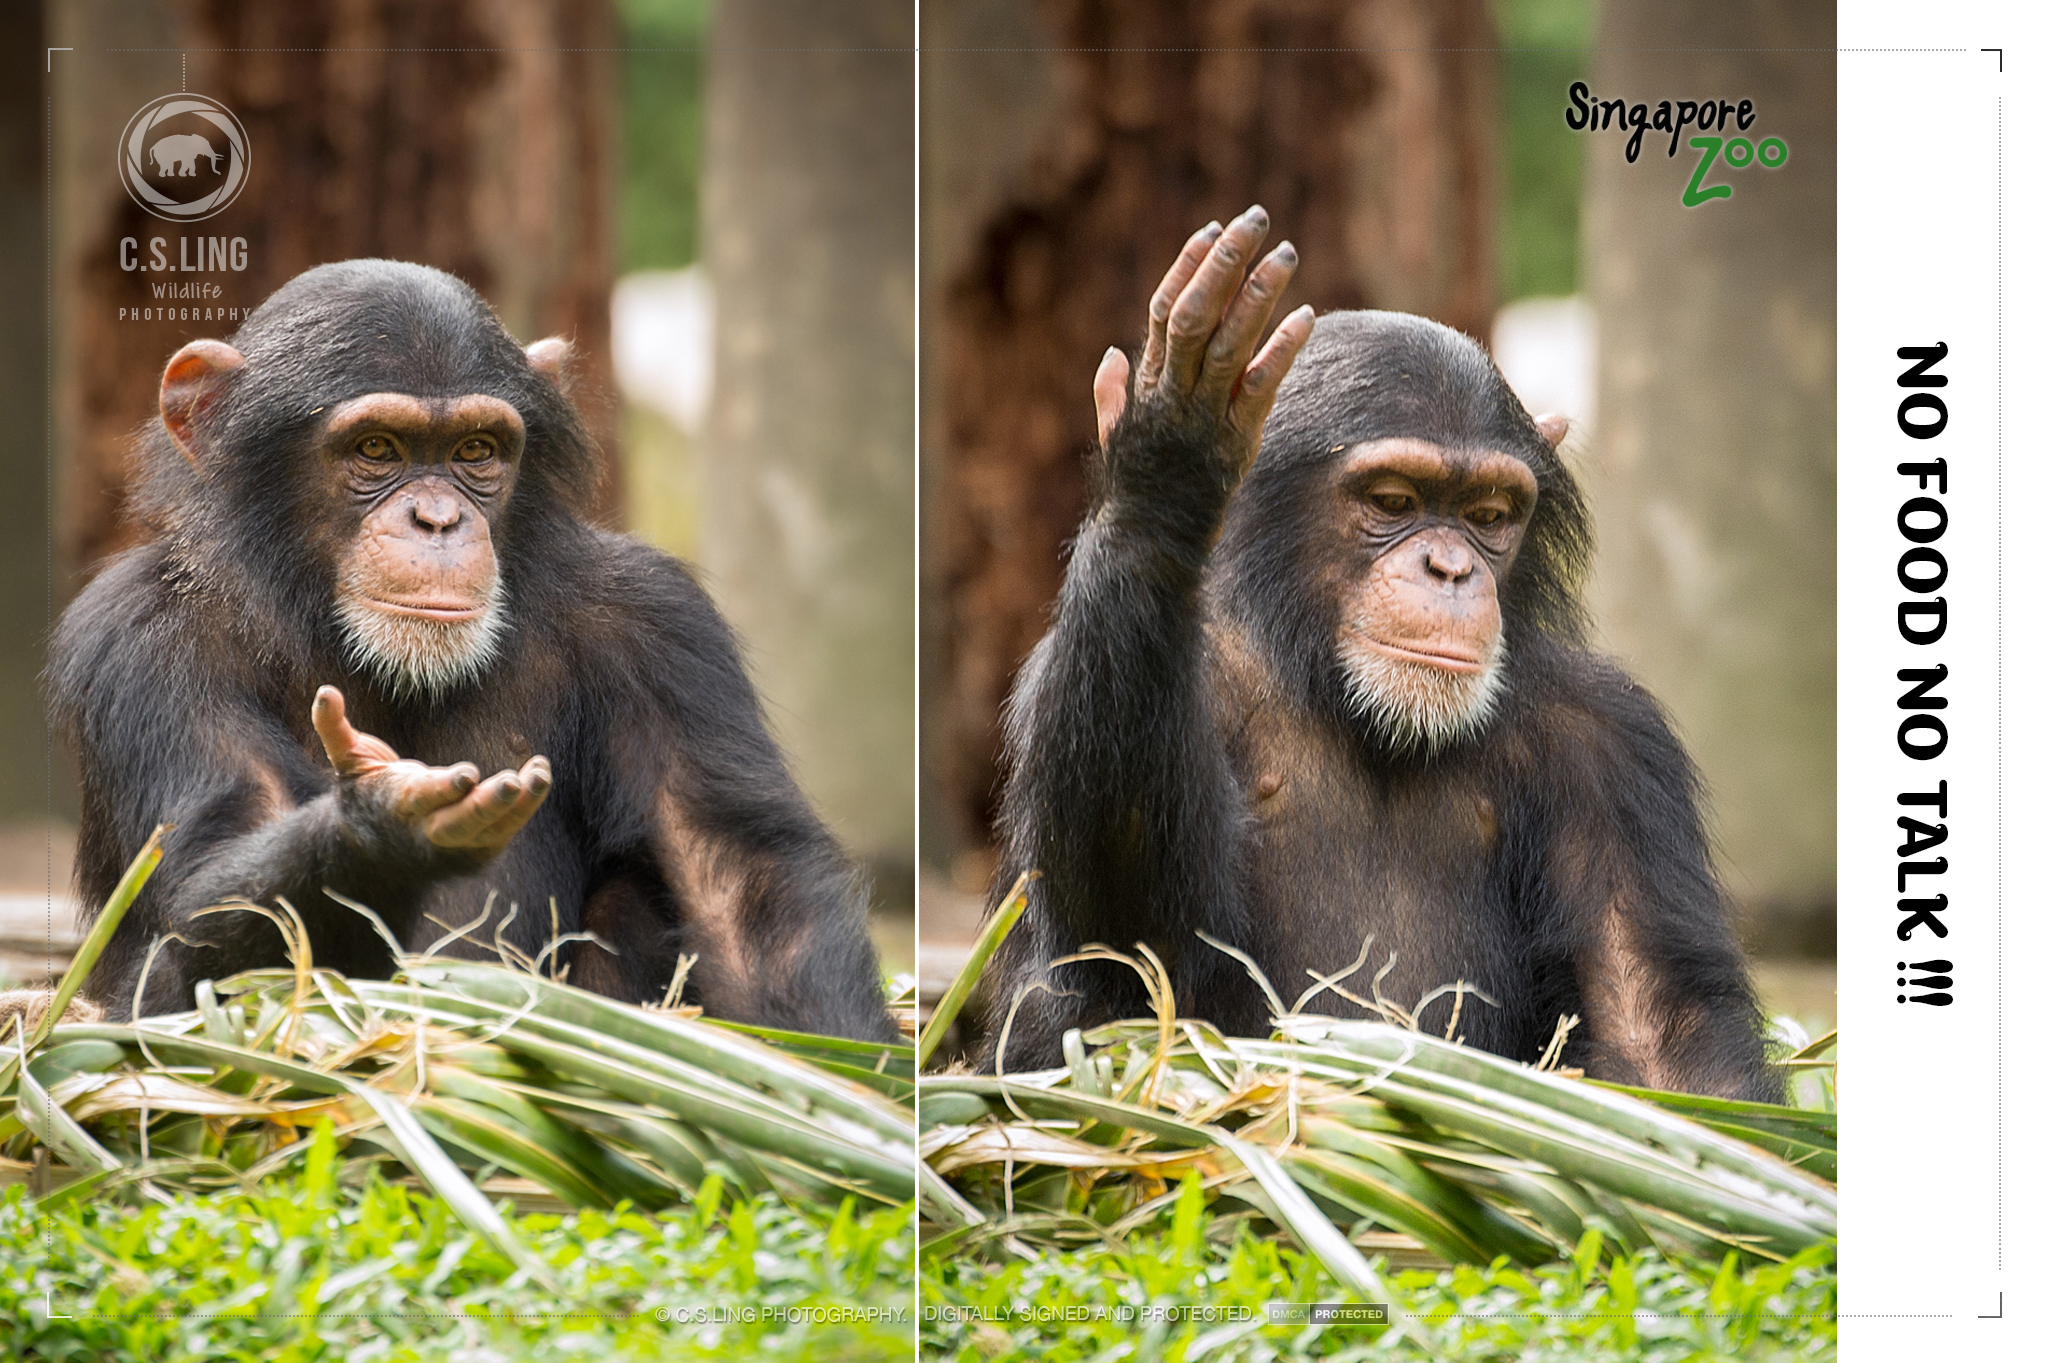 Chimpanzee Funny Antics at Singapore Zoo by C.S.Ling